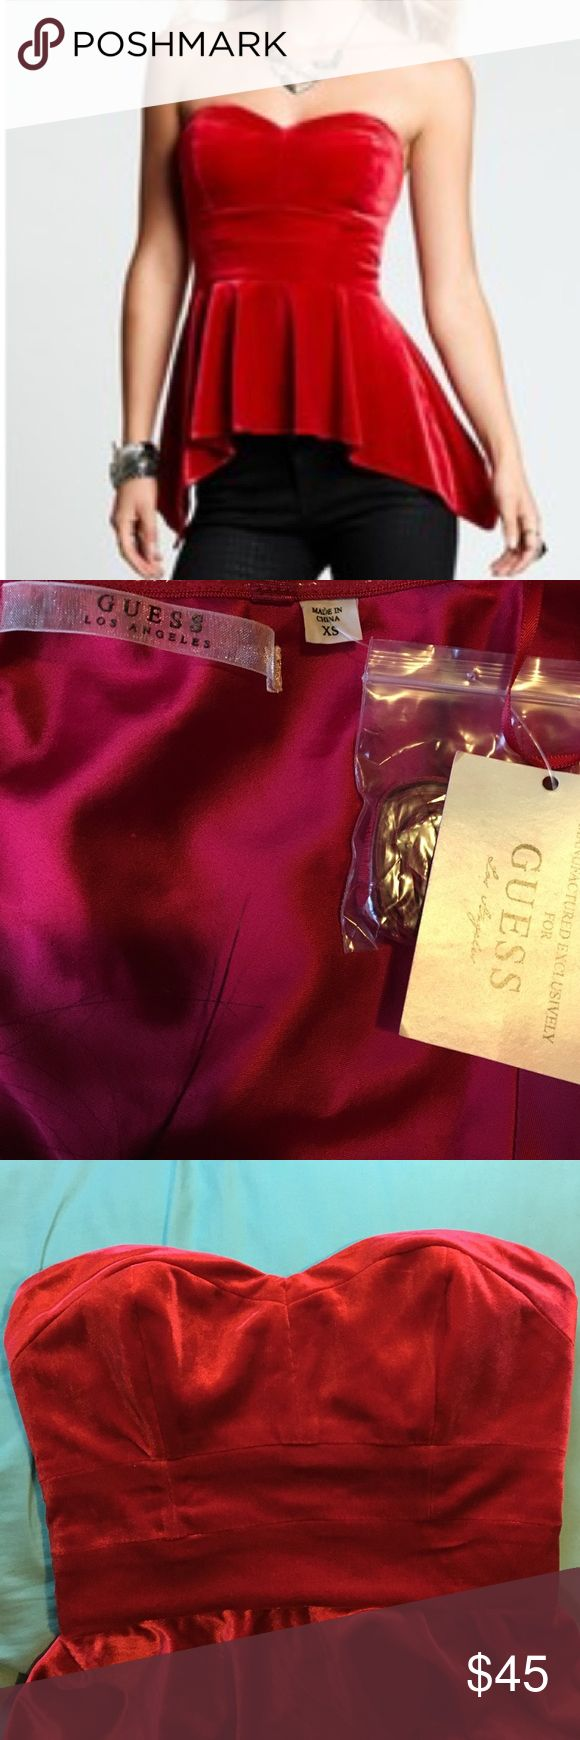 Red velvet peplum shirt NEW with tags Guess extra small red velvet peplum shirt care label cut Guess Tops Blouses